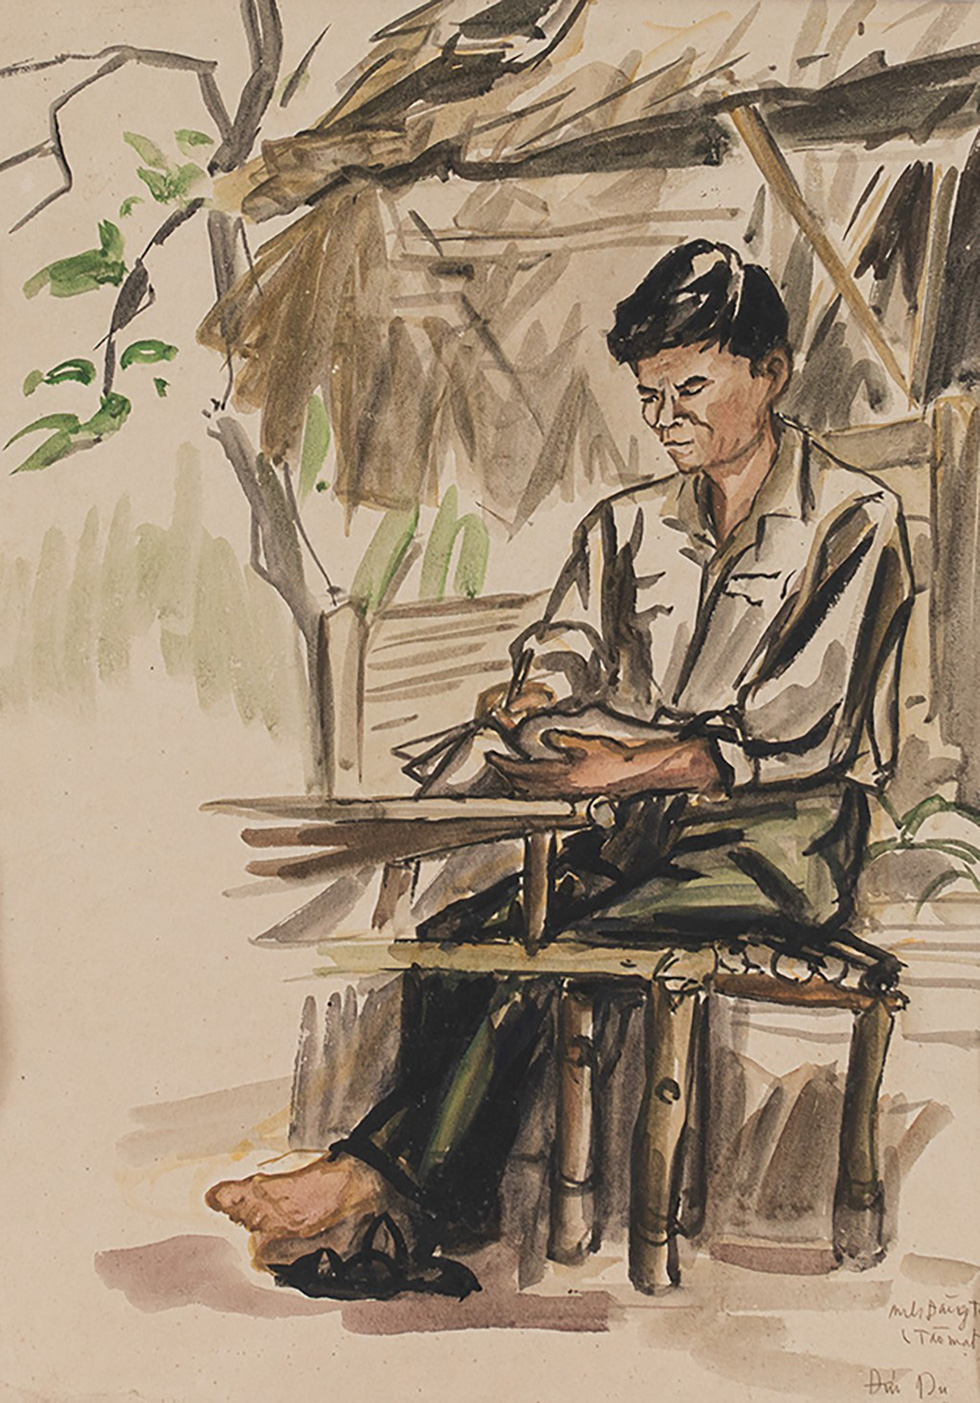 A painting portraying a Vietnamese soldier writing his journal in wartime by Nguyen Duc Du